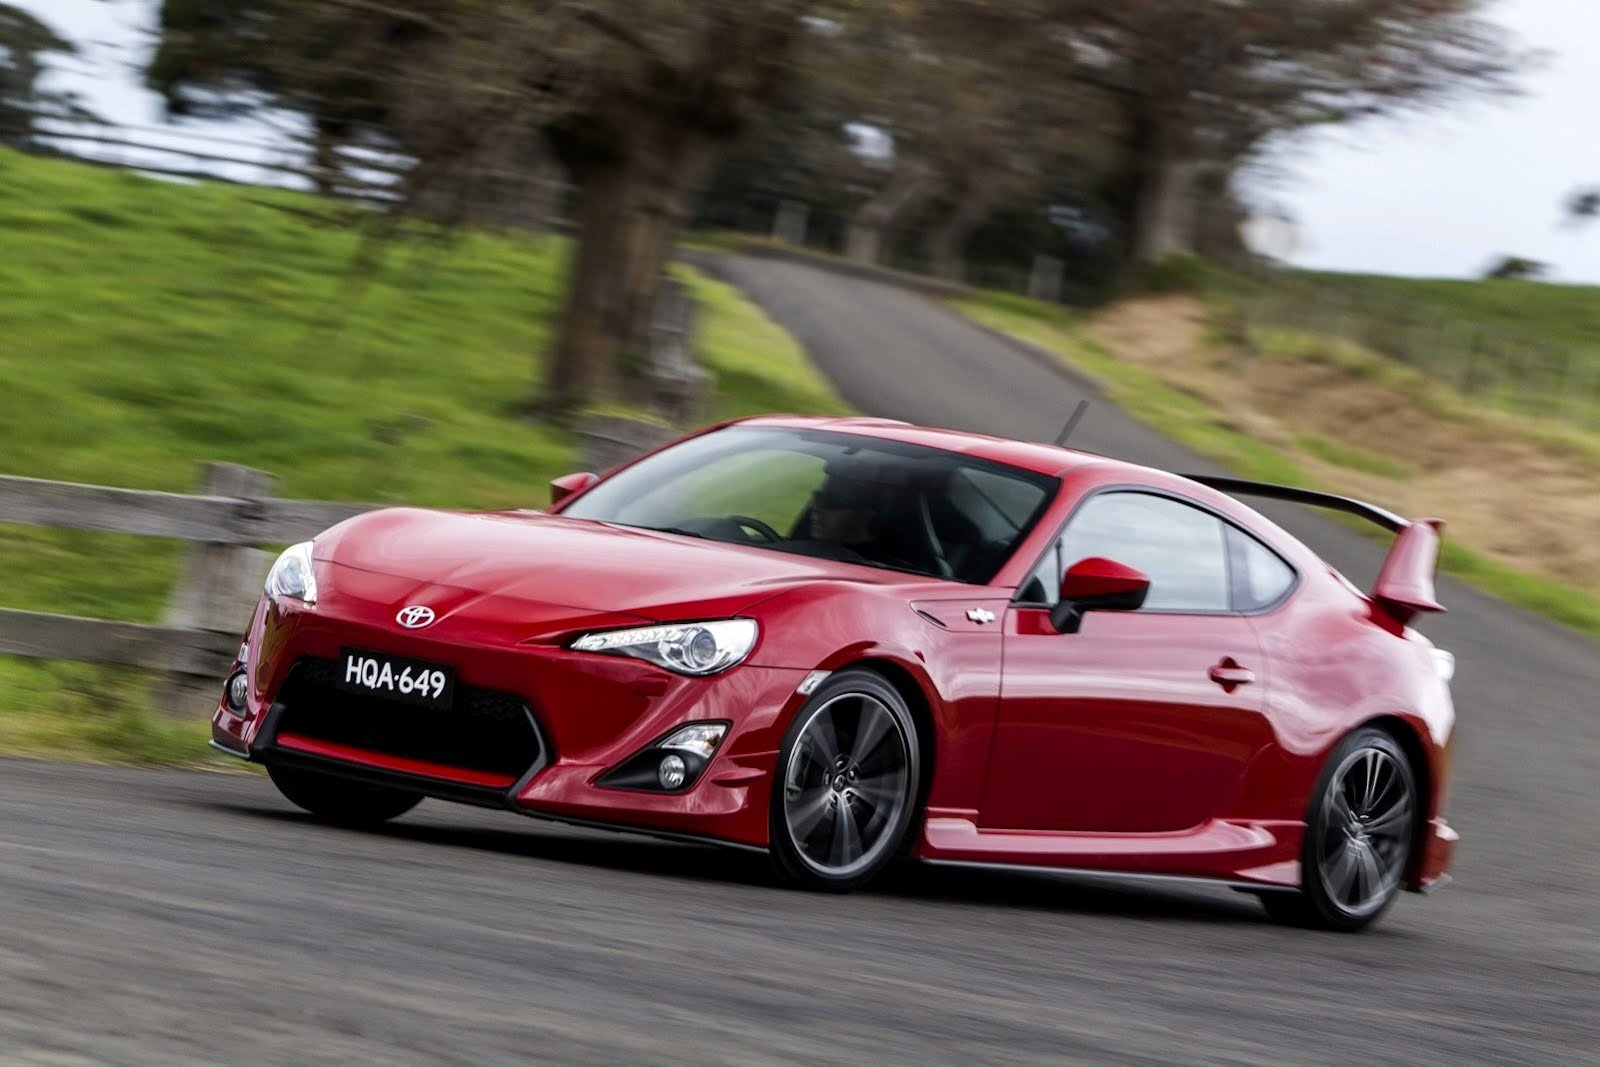 Toyota Gt86 Wallpapers HD Download 1600x1067